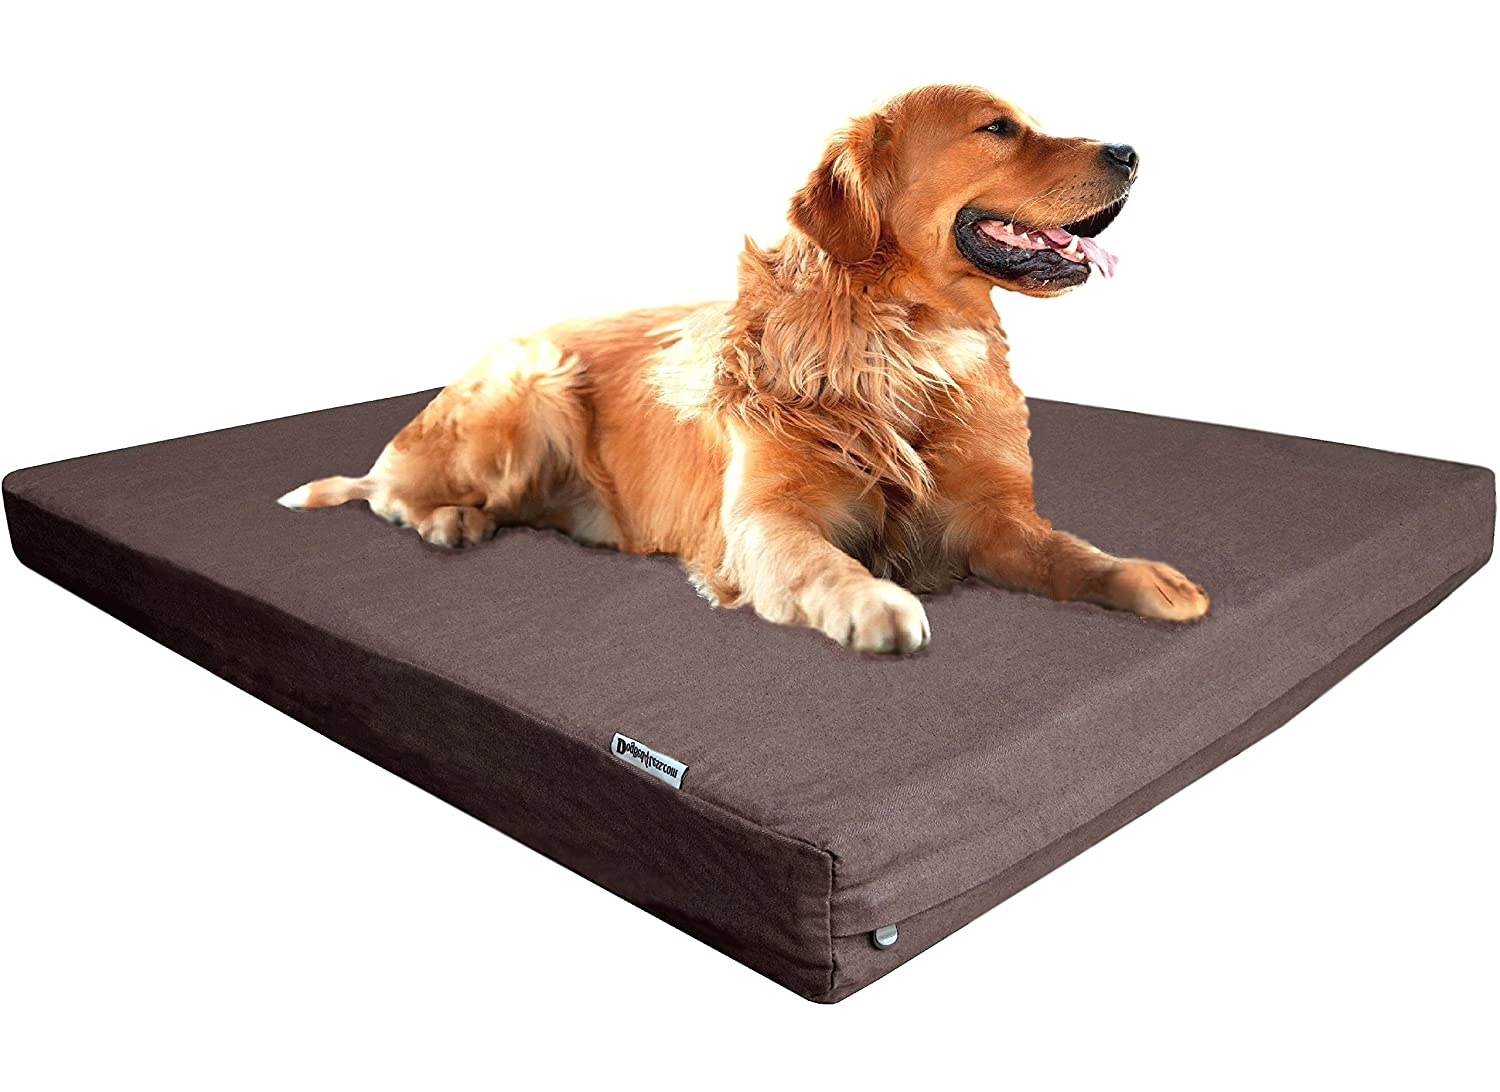 dogbed4less Premium Memory Foam Dog Bed, Joint-Relief Orthopedic Waterproof Liner, Washable Durable Denim Cover and Bonus 2nd External Case, 7 Sizes, Brown